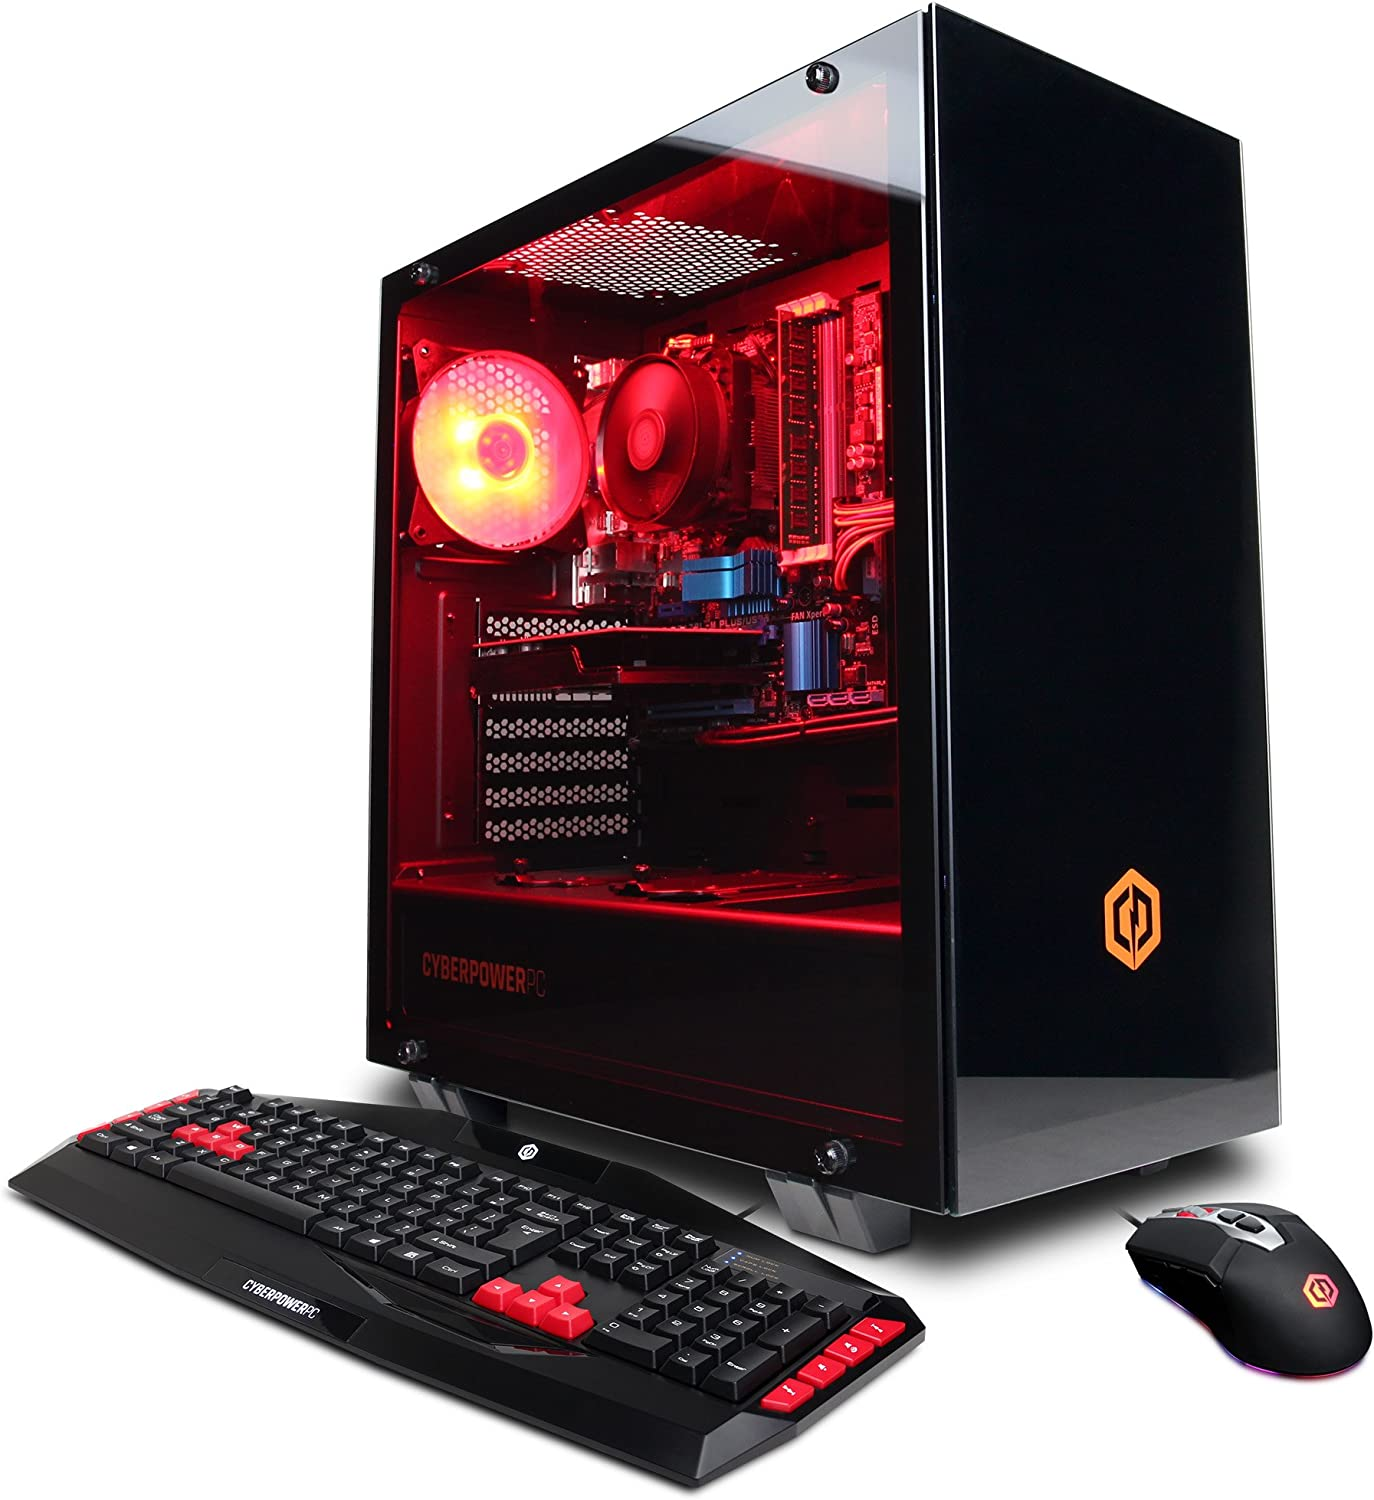 CyberpowerPC Gamer Ultra Gaming PC, AMD FX-6300 3.5GHz, Radeon R7 240 2GB, 8GB DDR3, 1TB HDD, WiFi & Win 10 Home (GUA884)